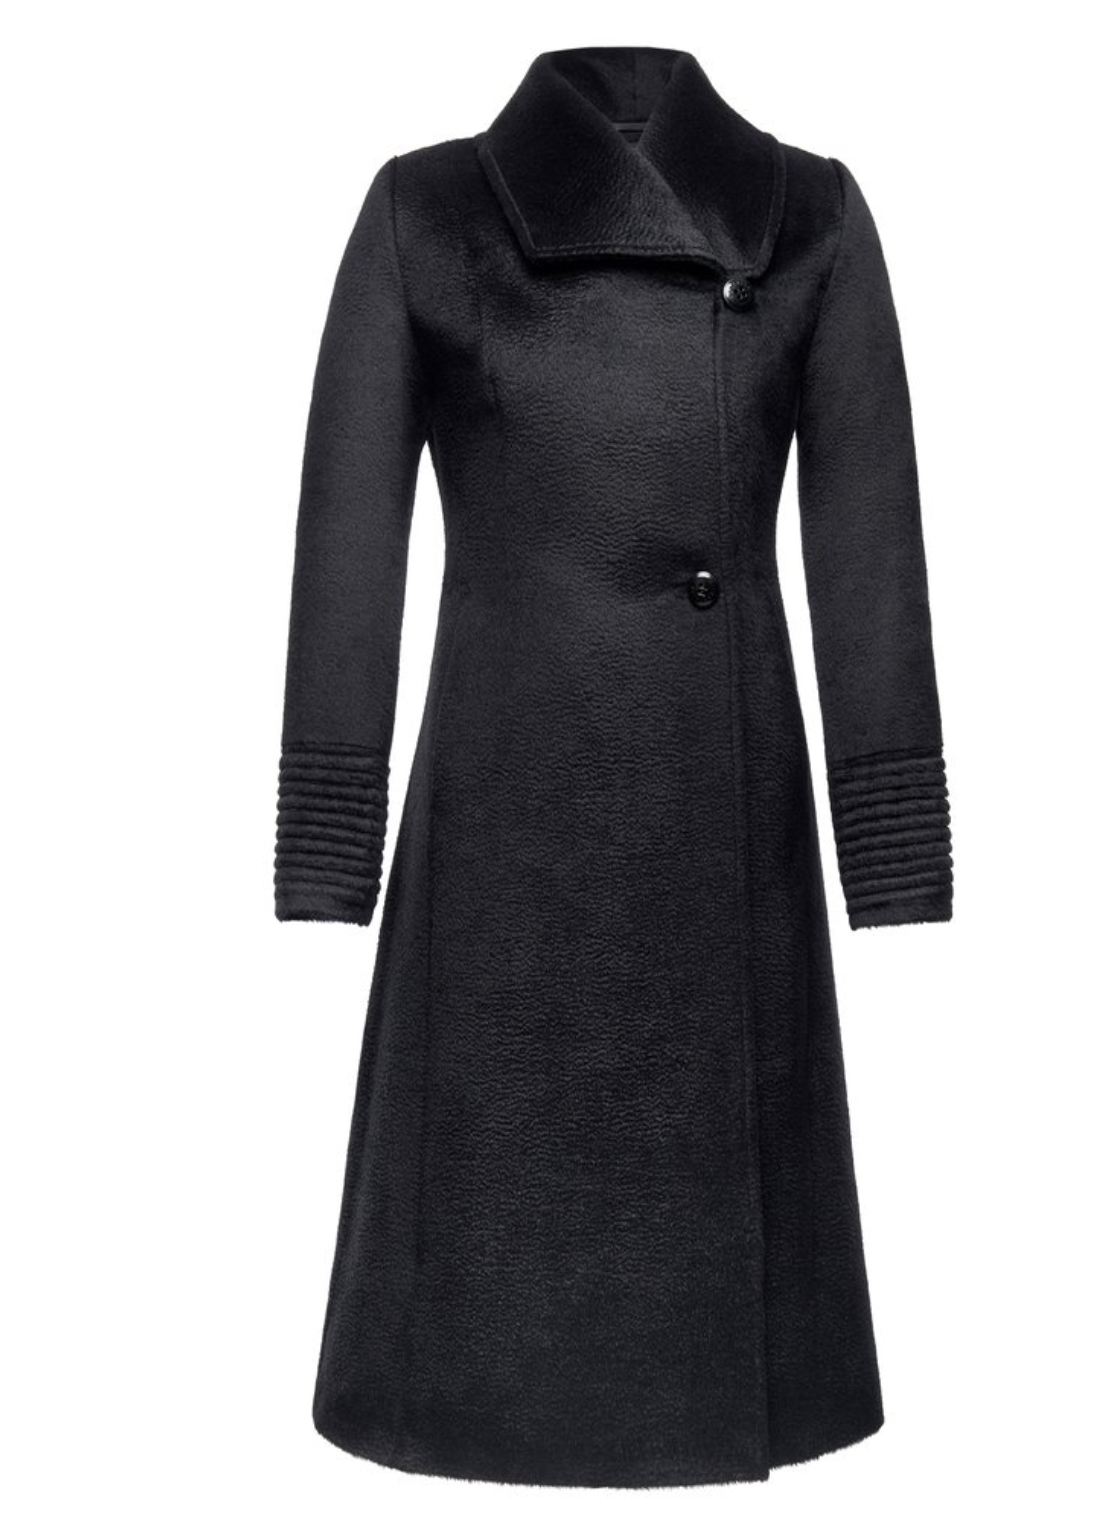 Empire Waist A-Line Coat in Black